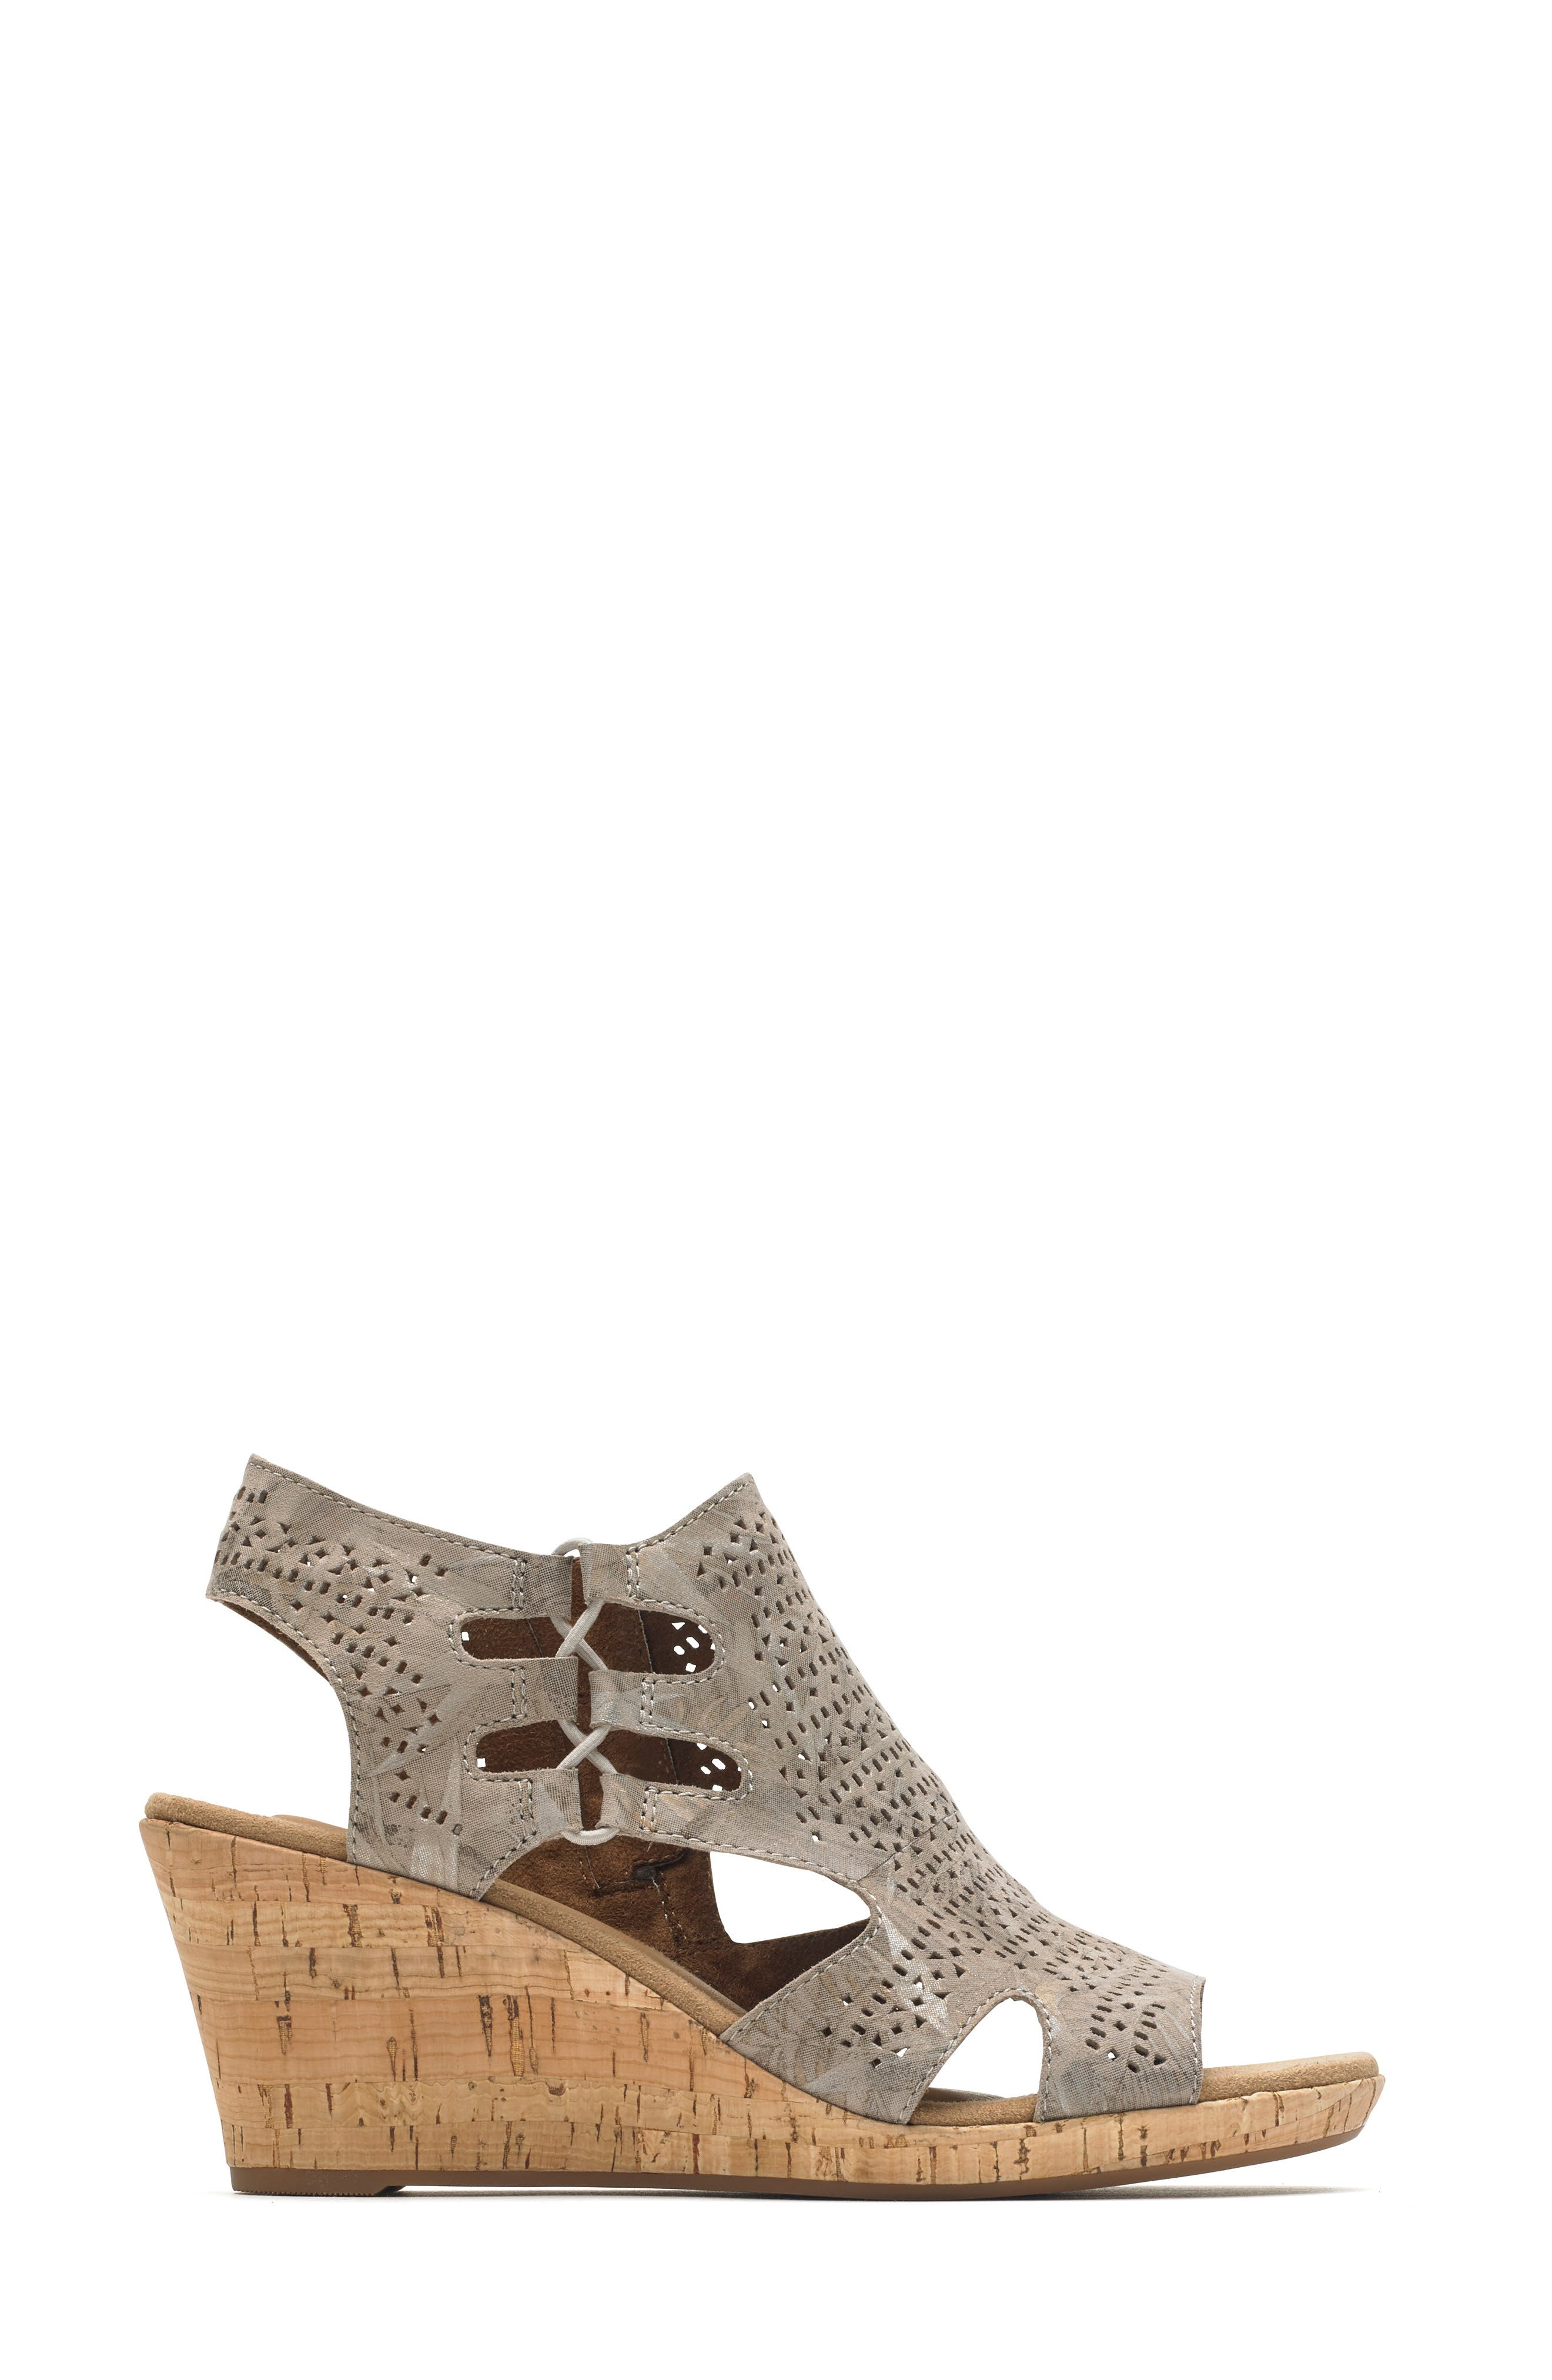 ROCKPORT COBB HILL, Janna Perforated Wedge Sandal, Alternate thumbnail 3, color, FLORAL METALLIC LEATHER